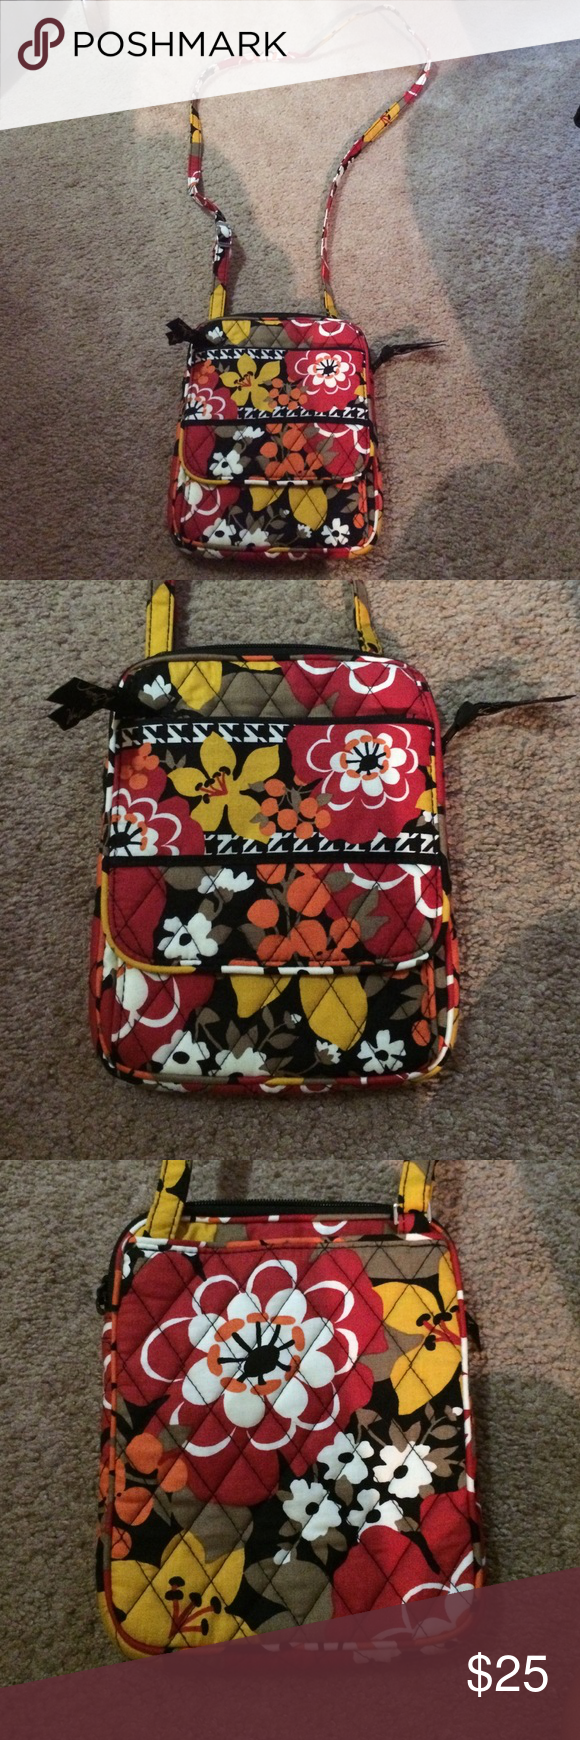 Vera Bradley mini hipster Vera Bradley cross body purse in like new condition, sad to get rid of it I just have too many purses! Vera Bradley Bags Crossbody Bags